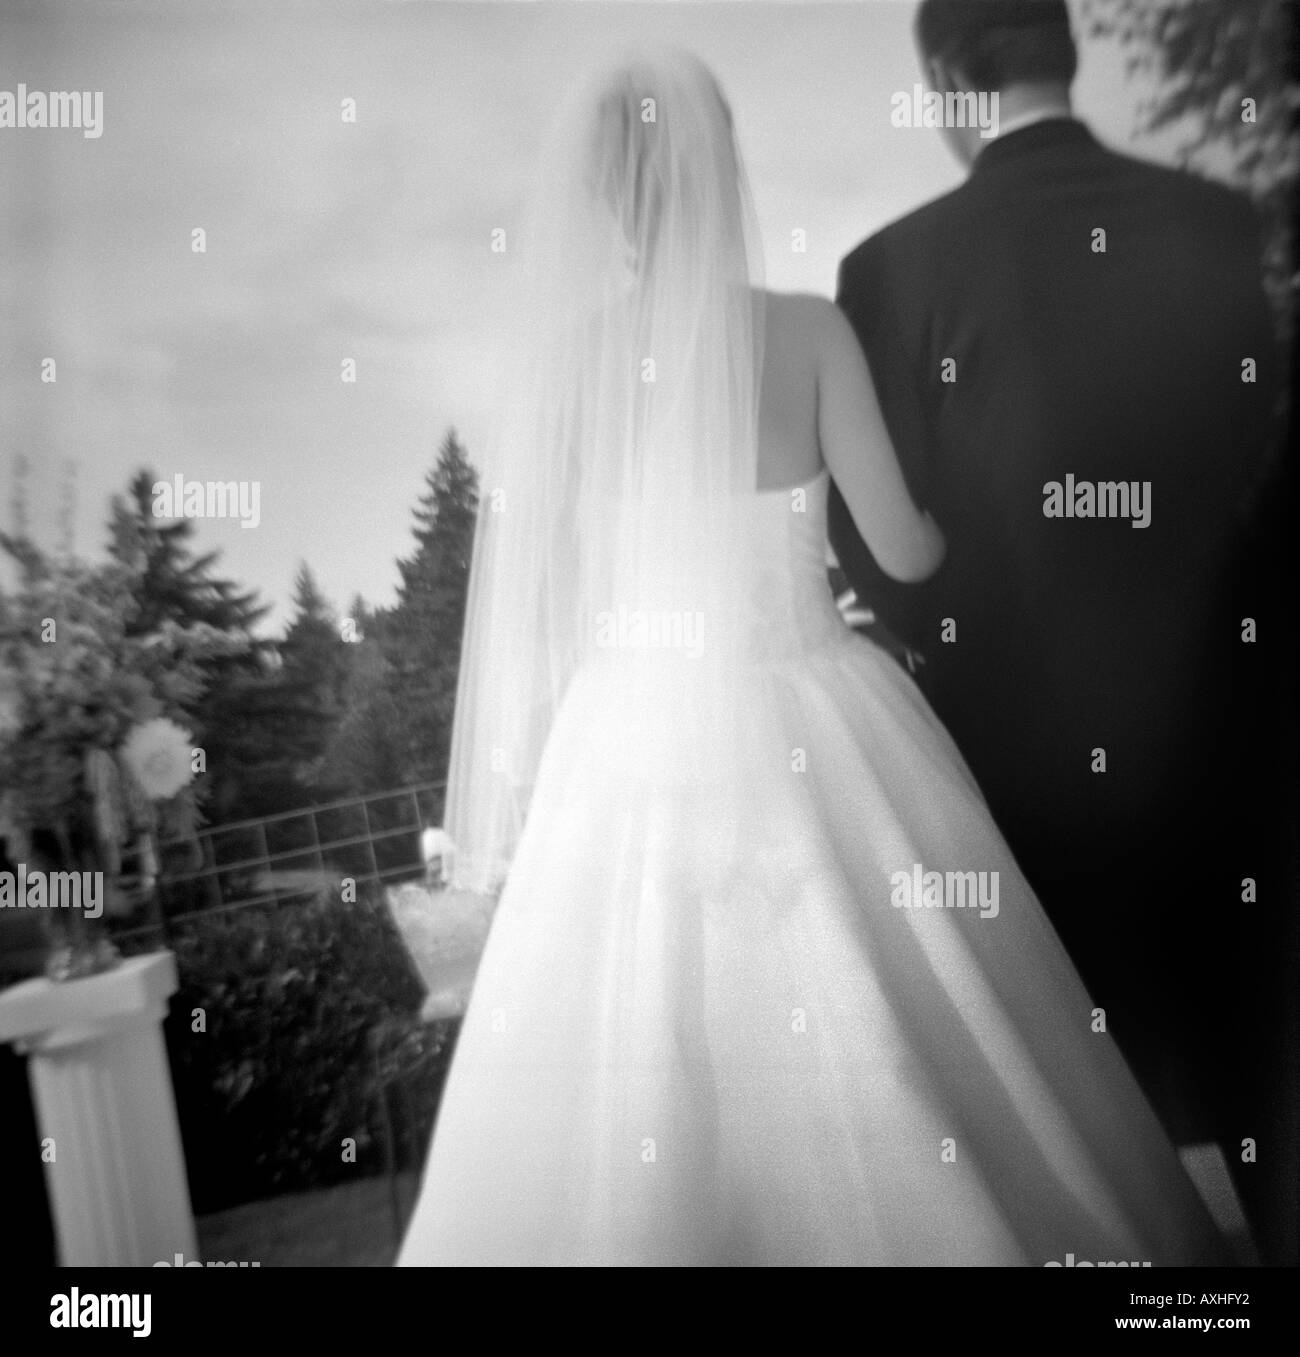 Bride and Groom from Rear - Stock Image